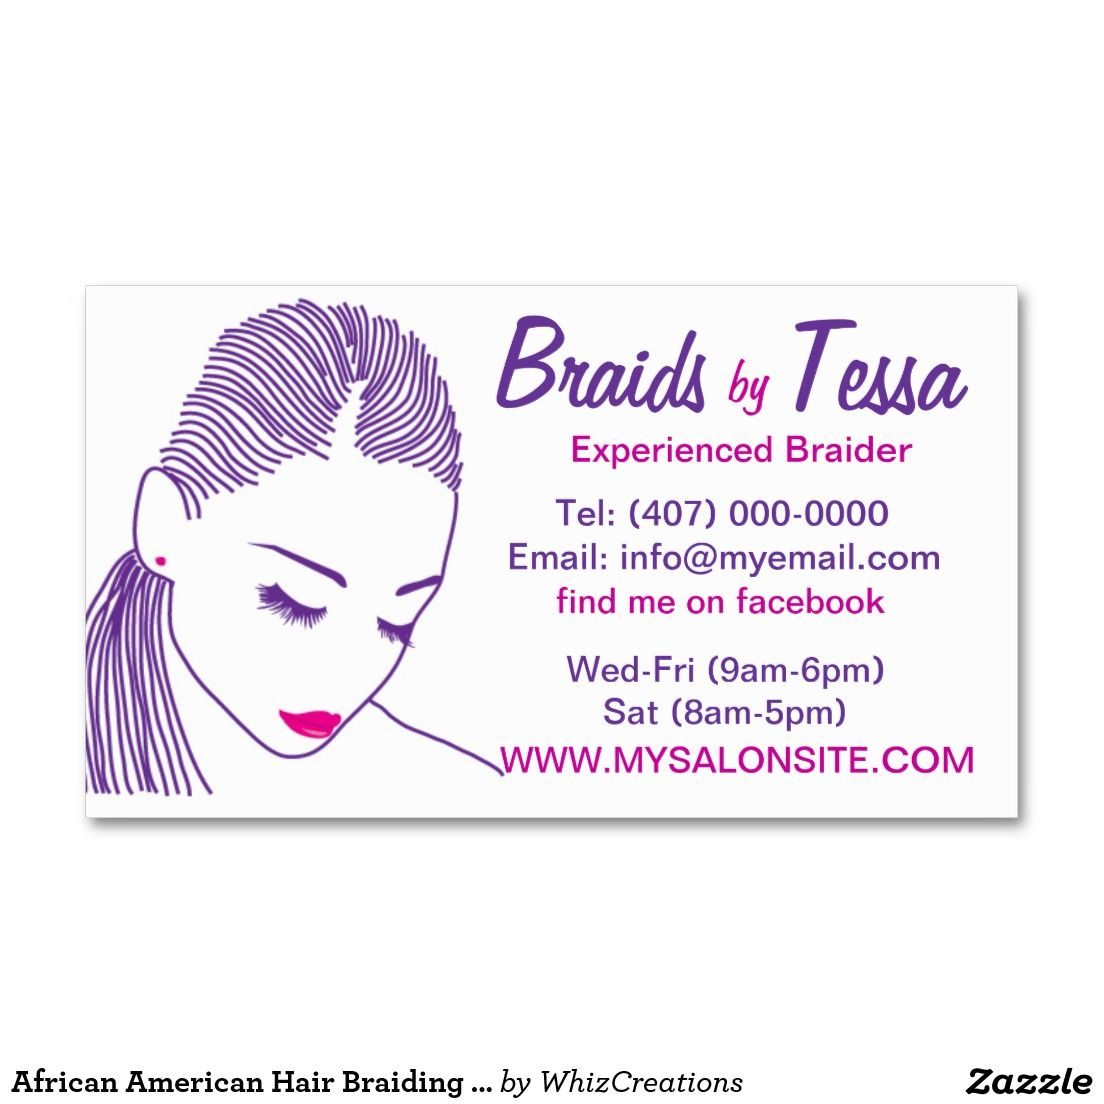 African american hair braiding salon business card for Braiding business cards